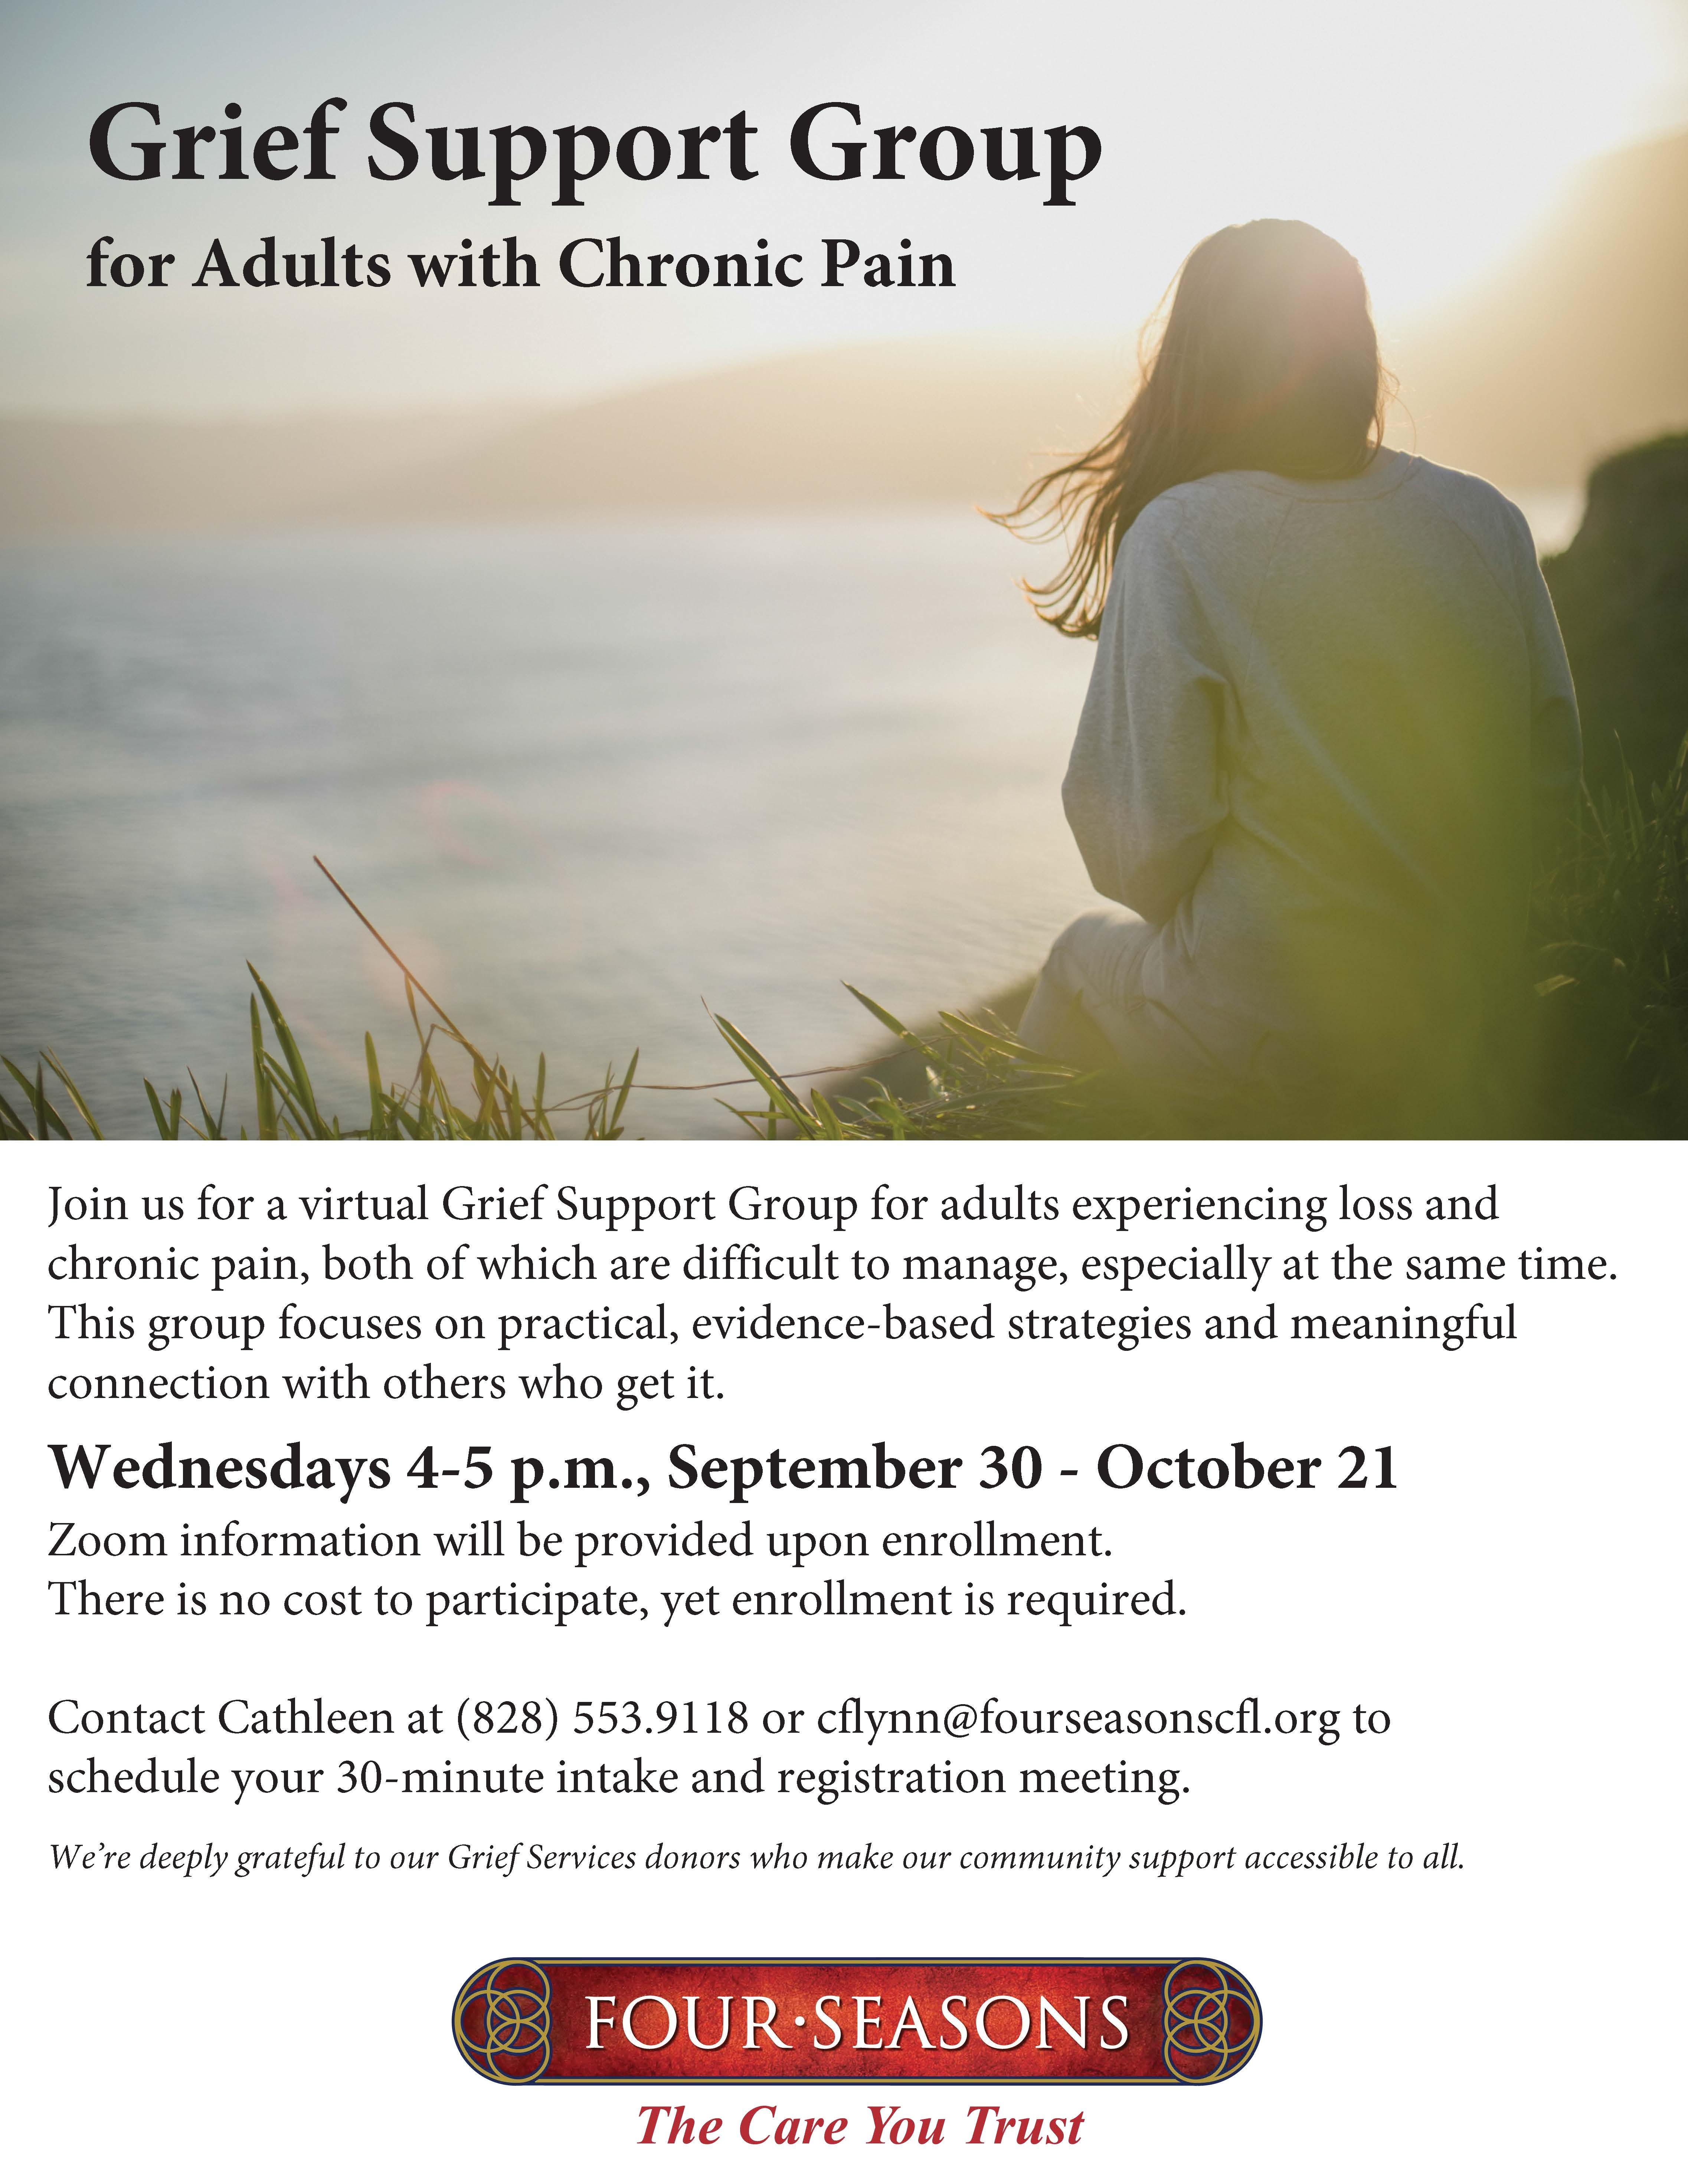 Grief Support Groupfor Adults with Chronic Pain September 30.October 21 2020 flyer.jpg.jpeg